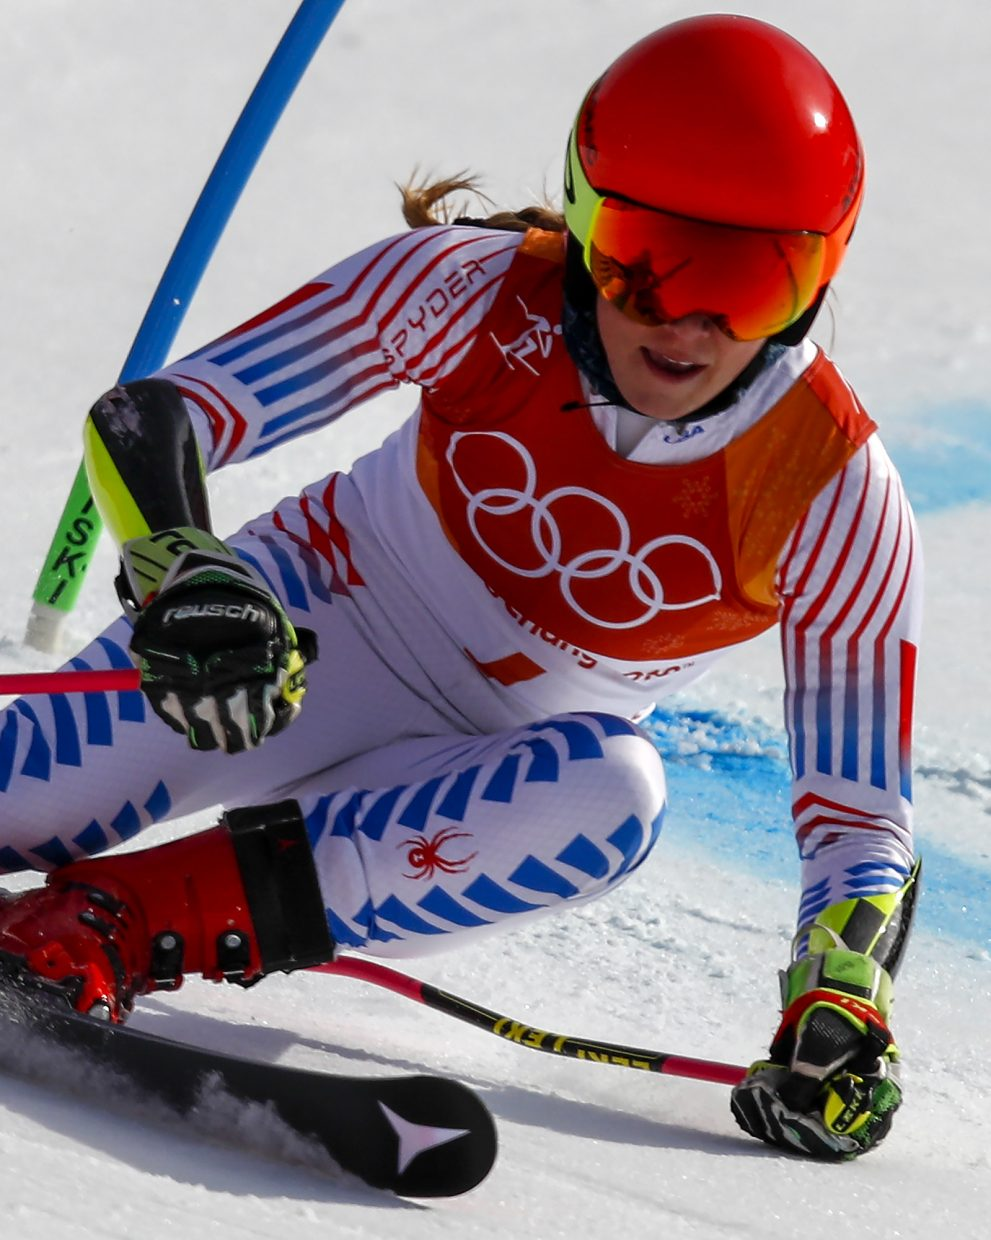 Vail's Mikaela Shiffrin wins gold in her first race of ...